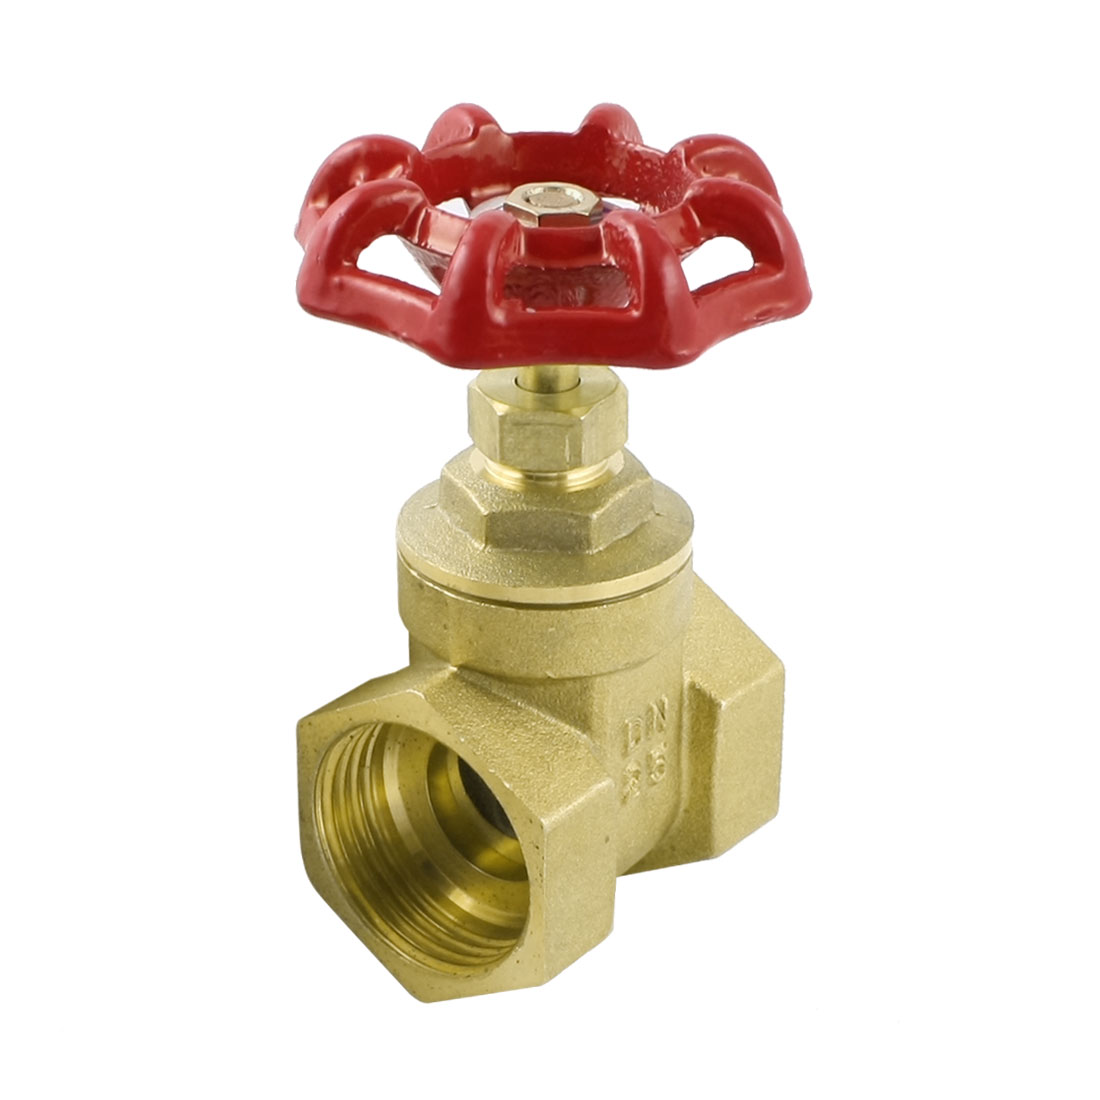 1PT Female Threaded Dual Ports Red Knob Control Water Brass Gate Valve